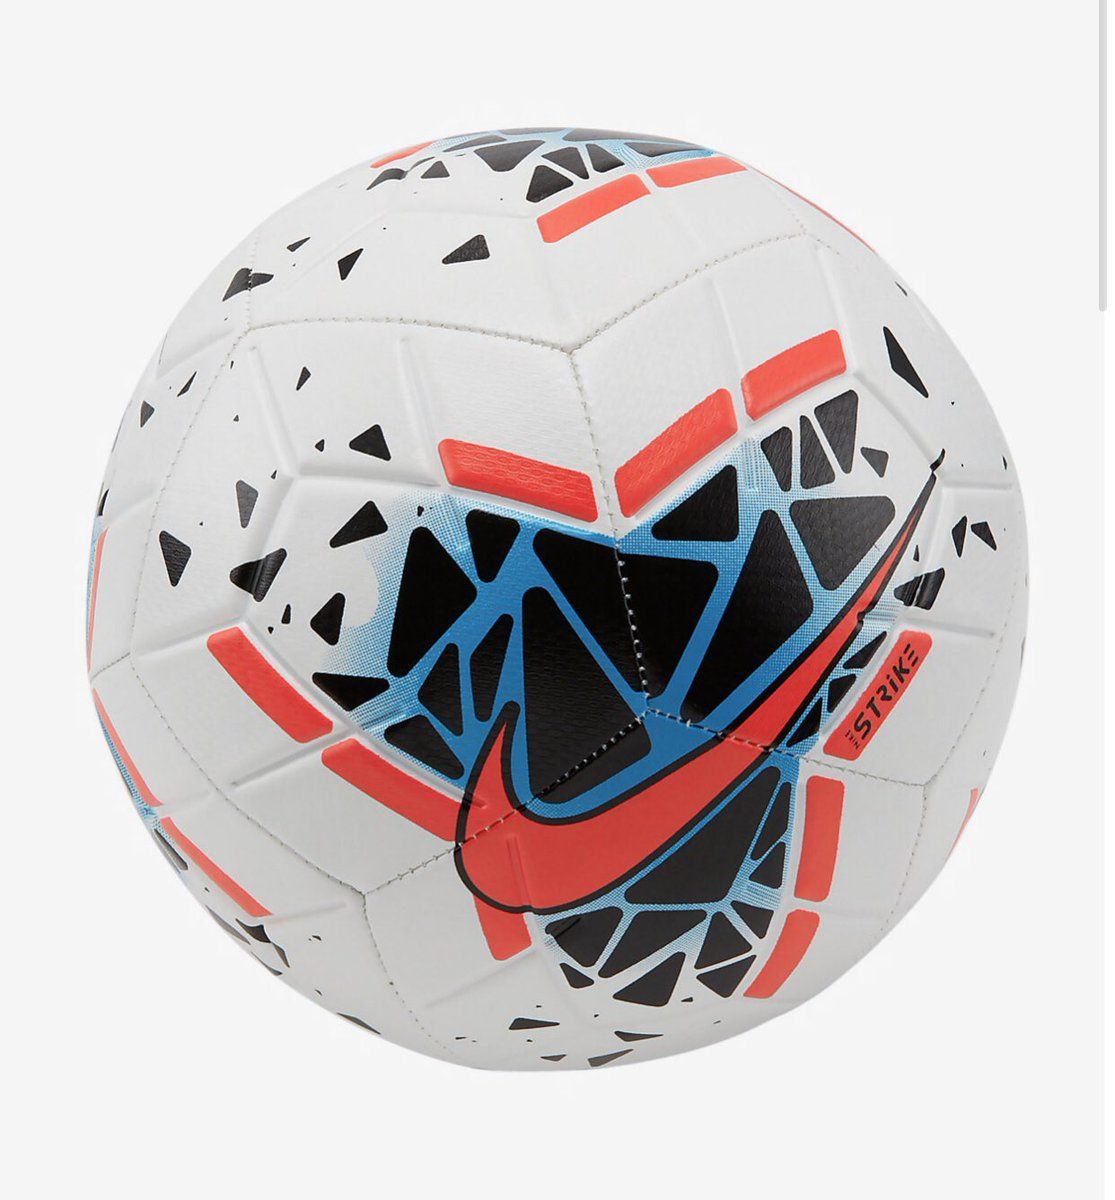 #FREE #PRIZE #GIVEAWAY  We are giving away a #Nike Strike #Football for free  To have #win and posted to door ... . #Follow us @firstgoalfooty  . #Retweet this post  . Tag a friend in the comments  It's that easy  Draw on 04/04/2020 #Insta Live  pic.twitter.com/jZglKV21Vs